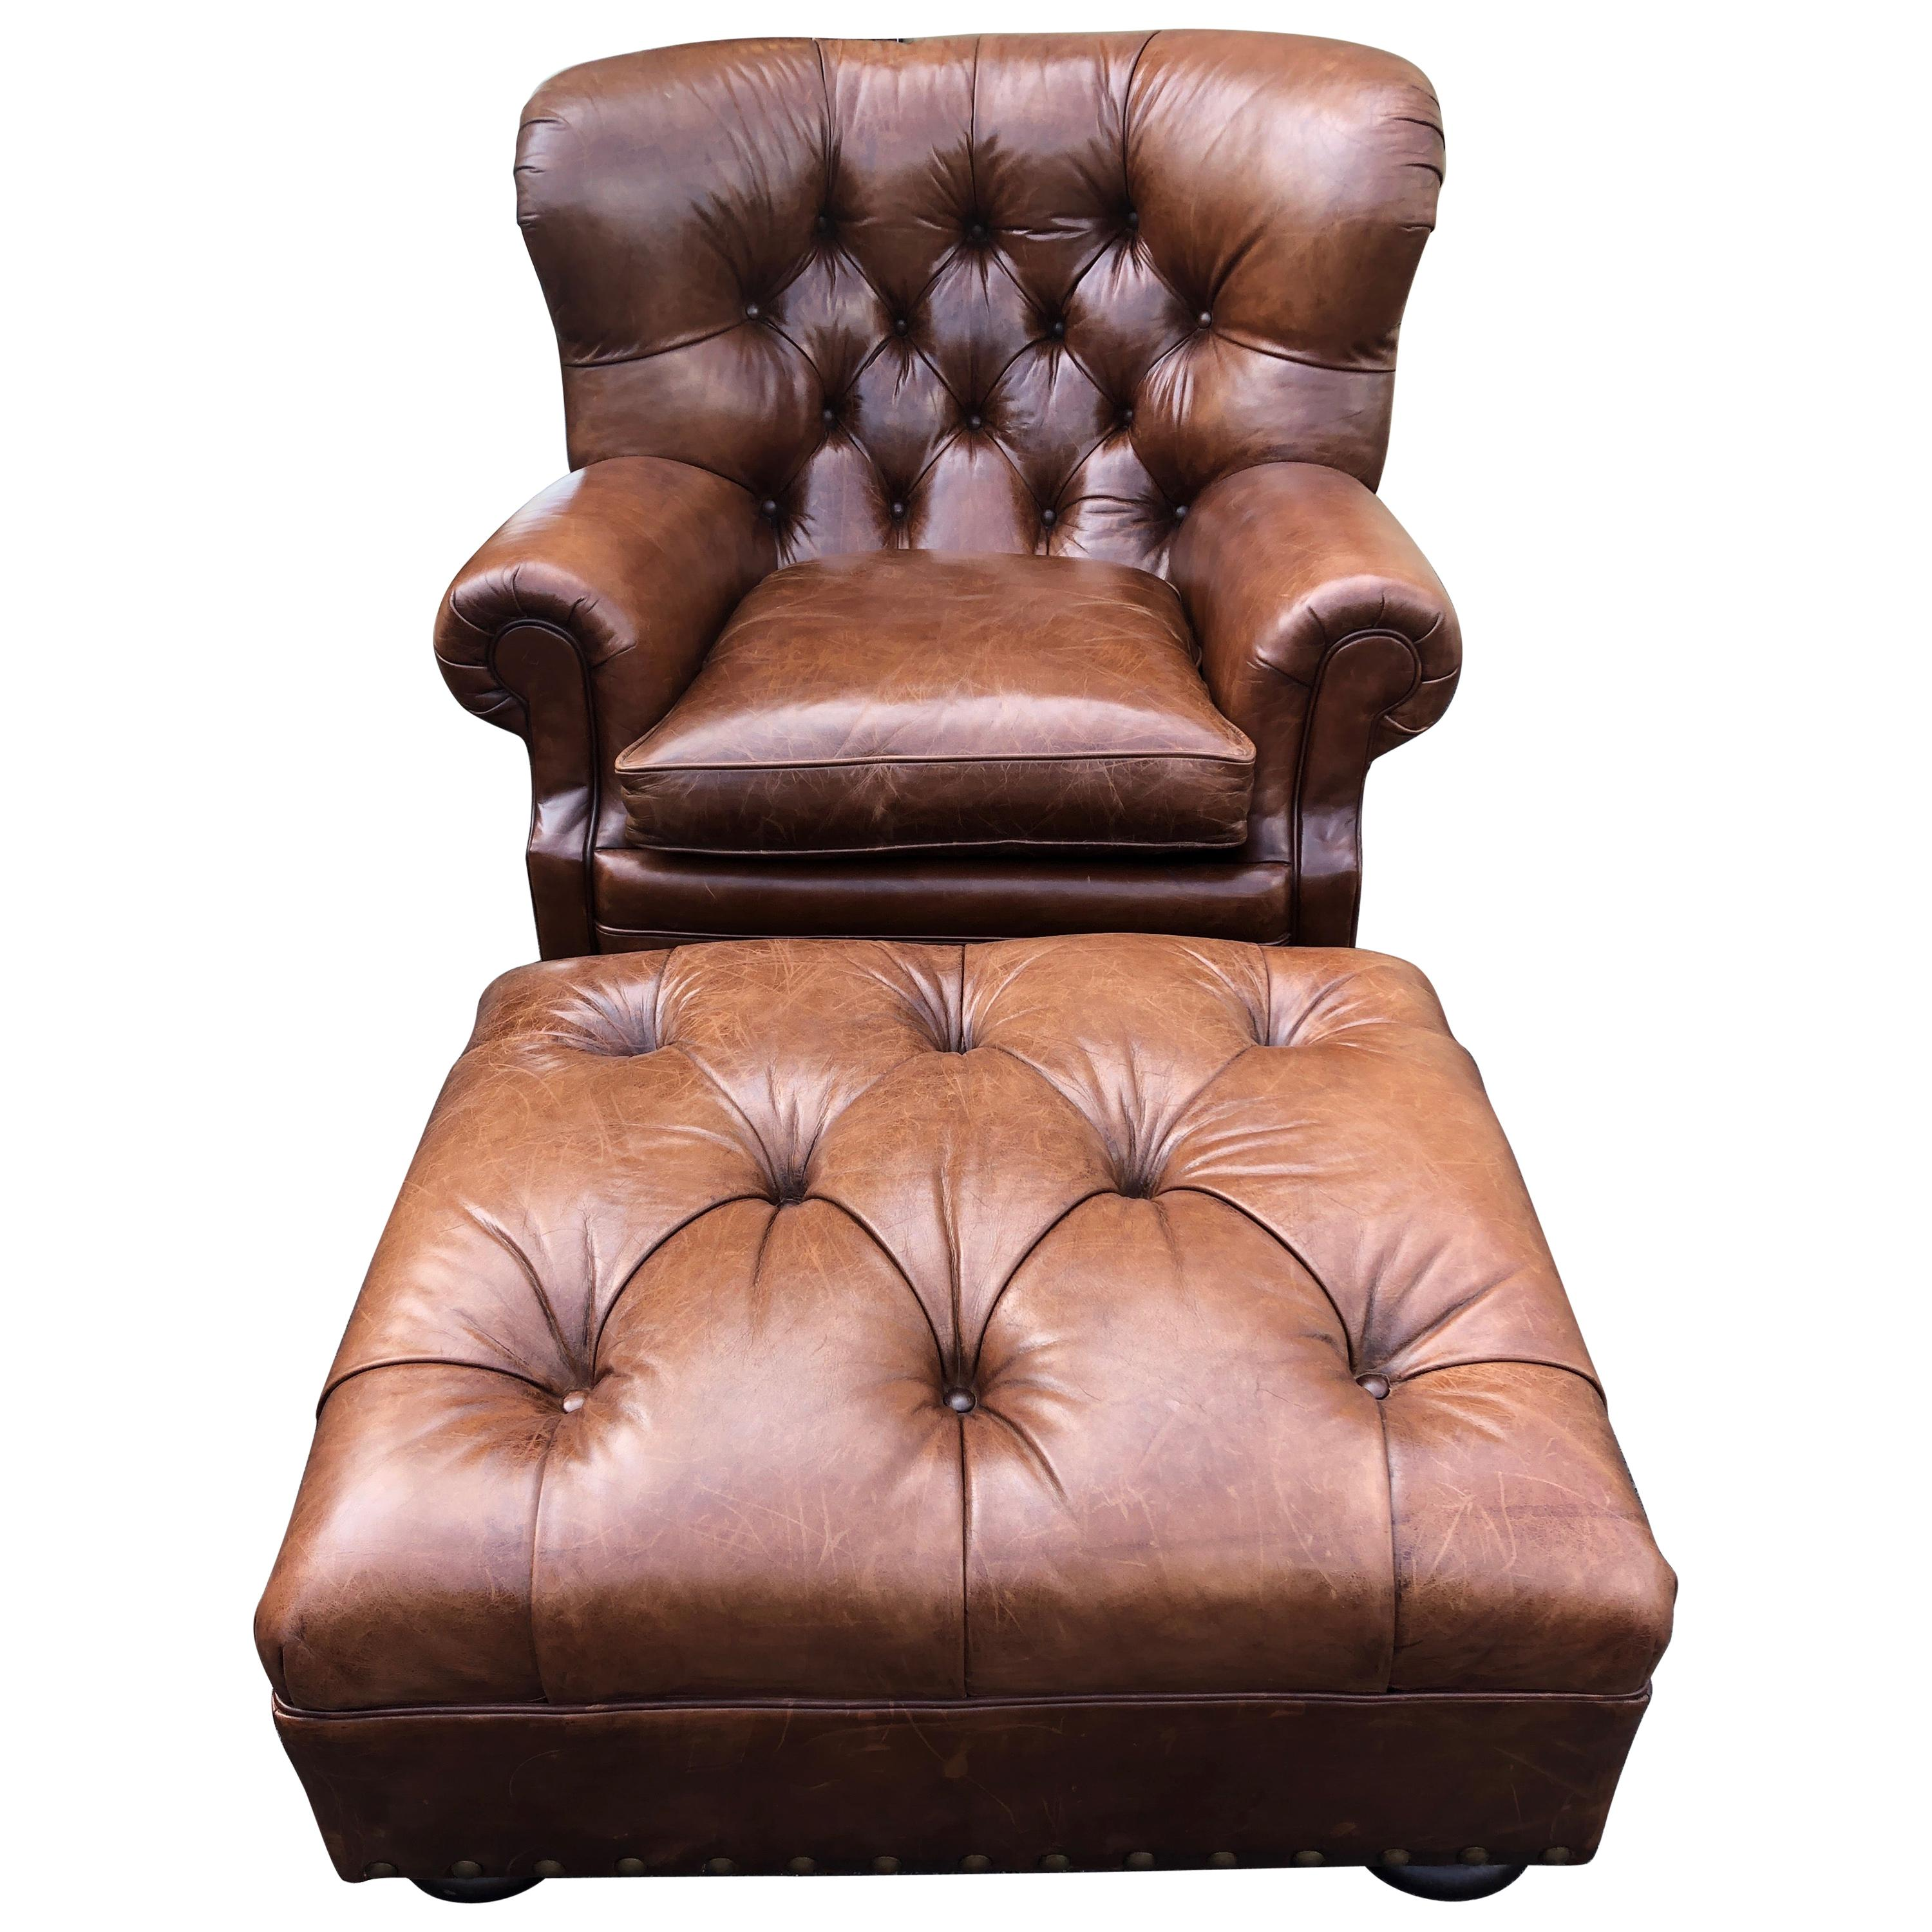 Ralph Lauren Writer S Chestnut Brown Leather Wingback Armchair And Ottoman Set